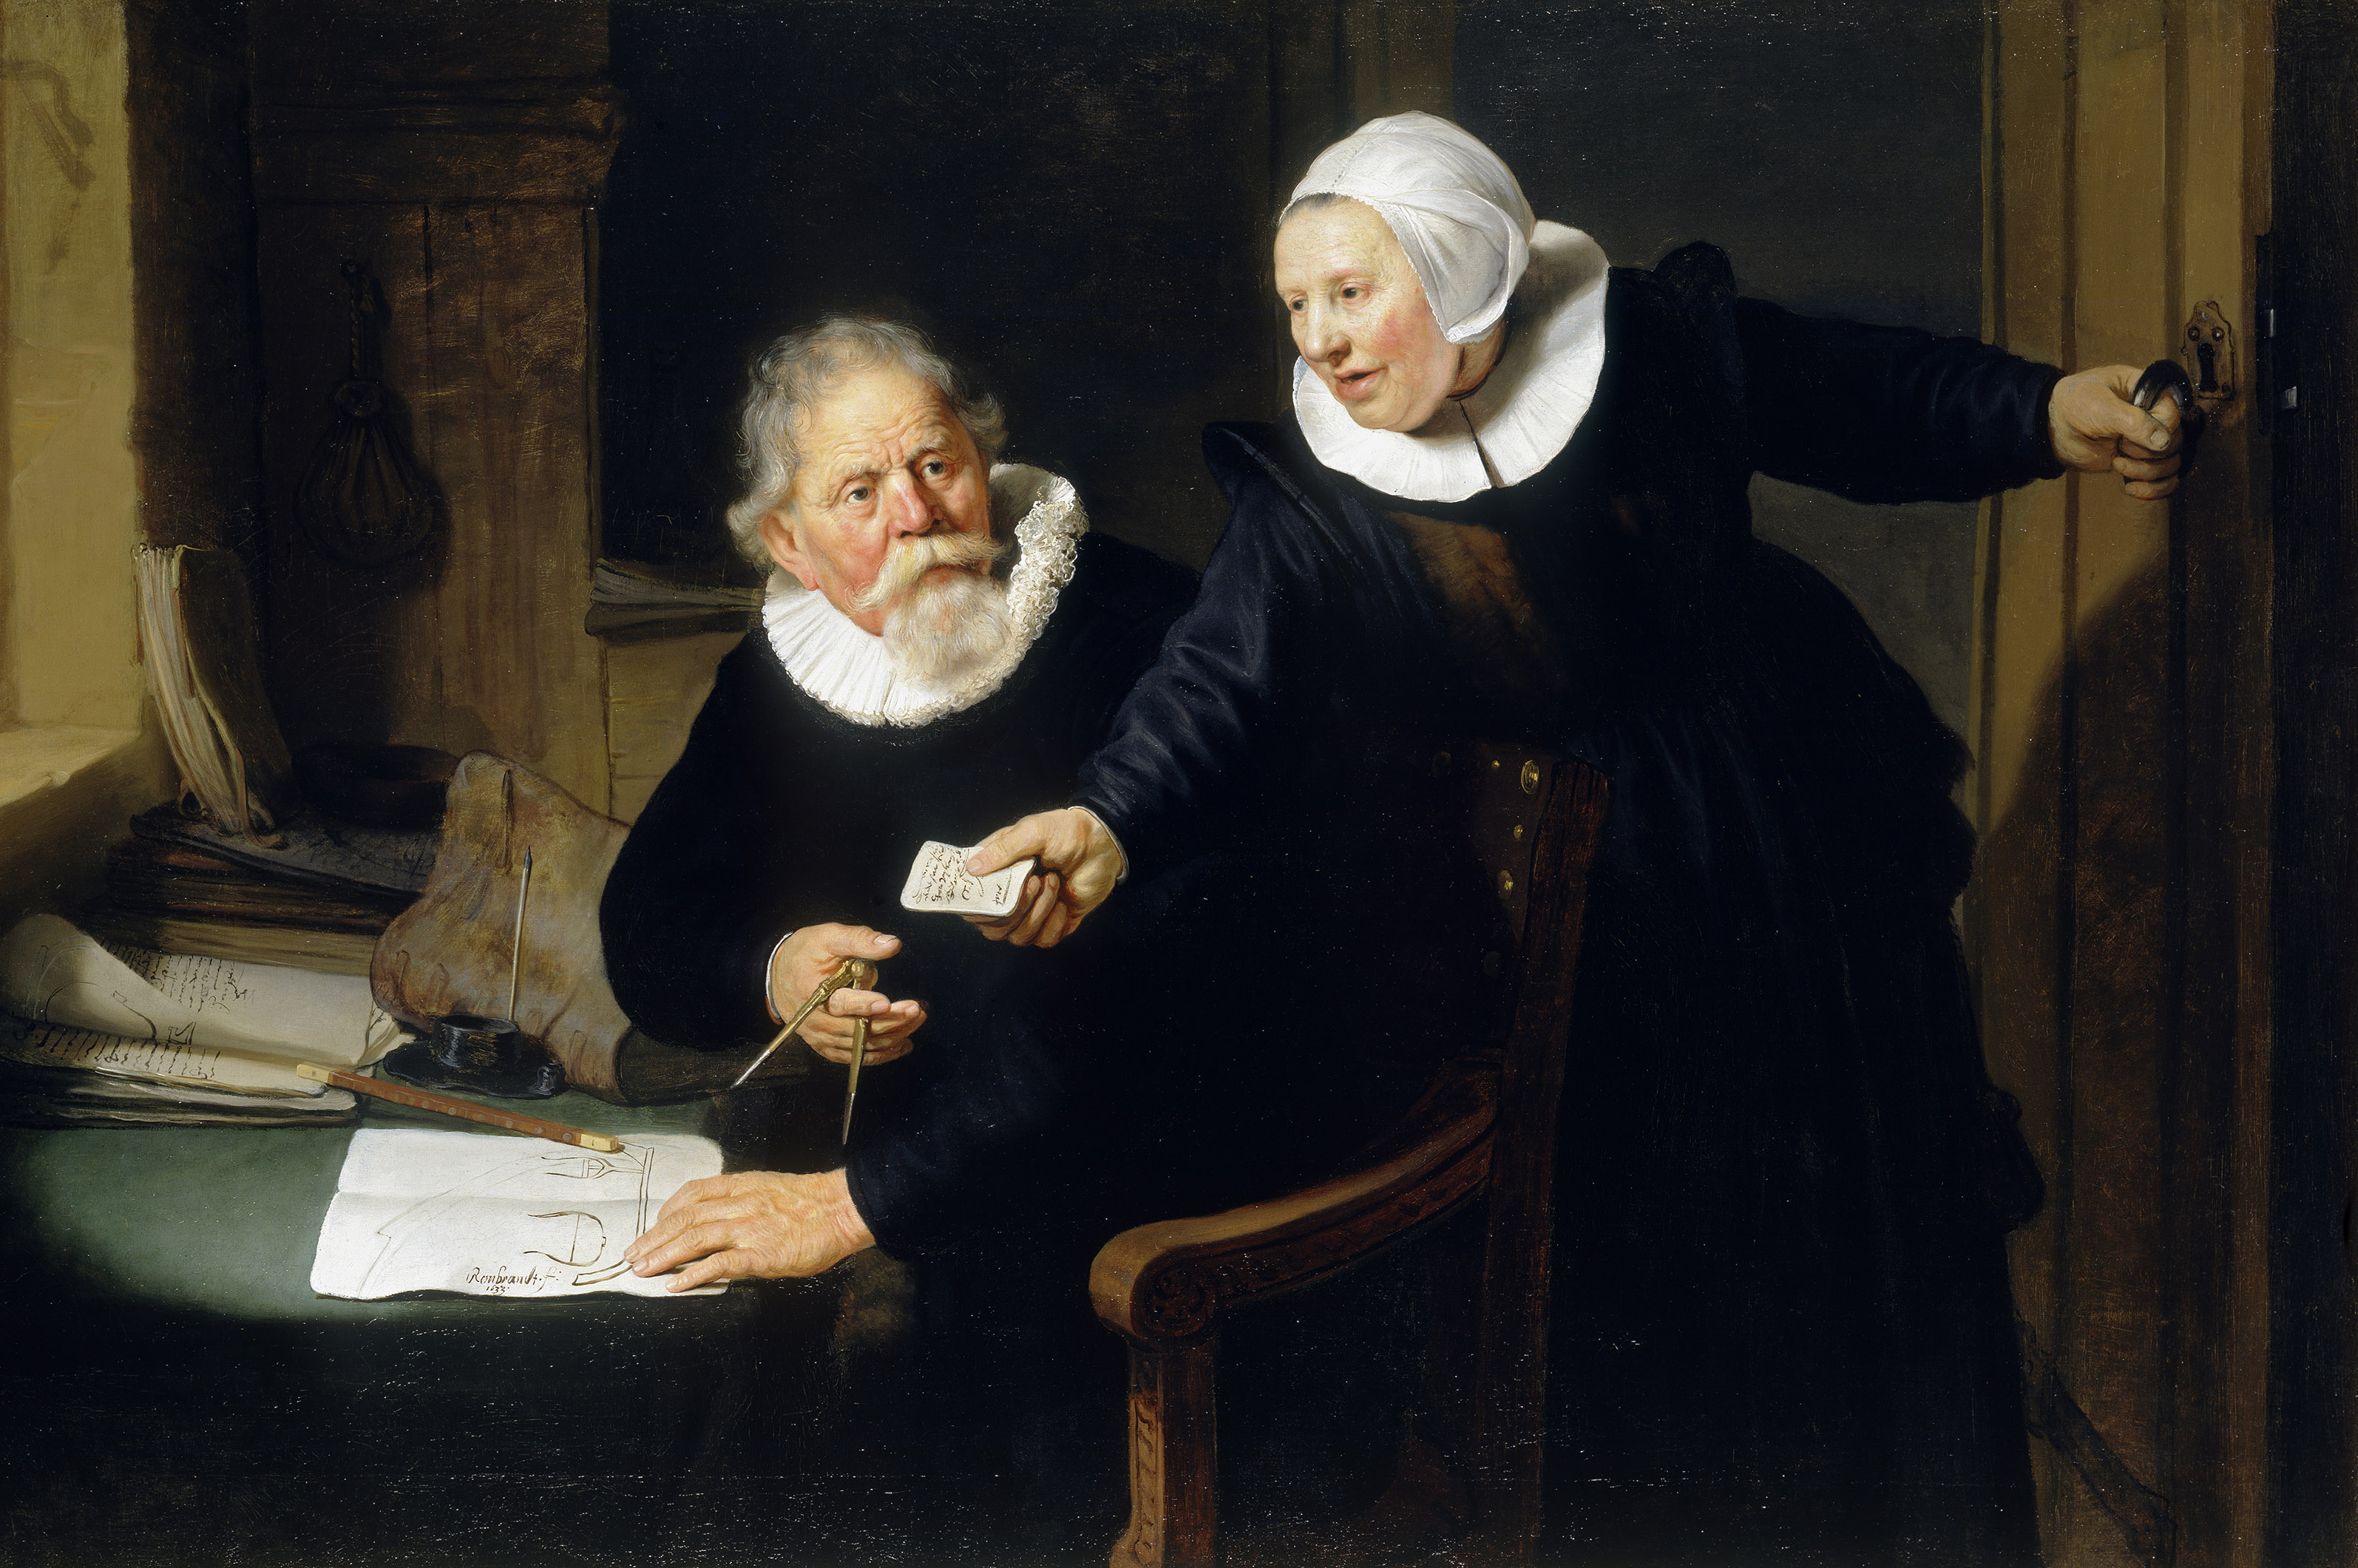 Rembrandt van Rijn, The Shipbuilder and his Wife: Jan Rijcksen and his Wife, Griet Jans, 1633